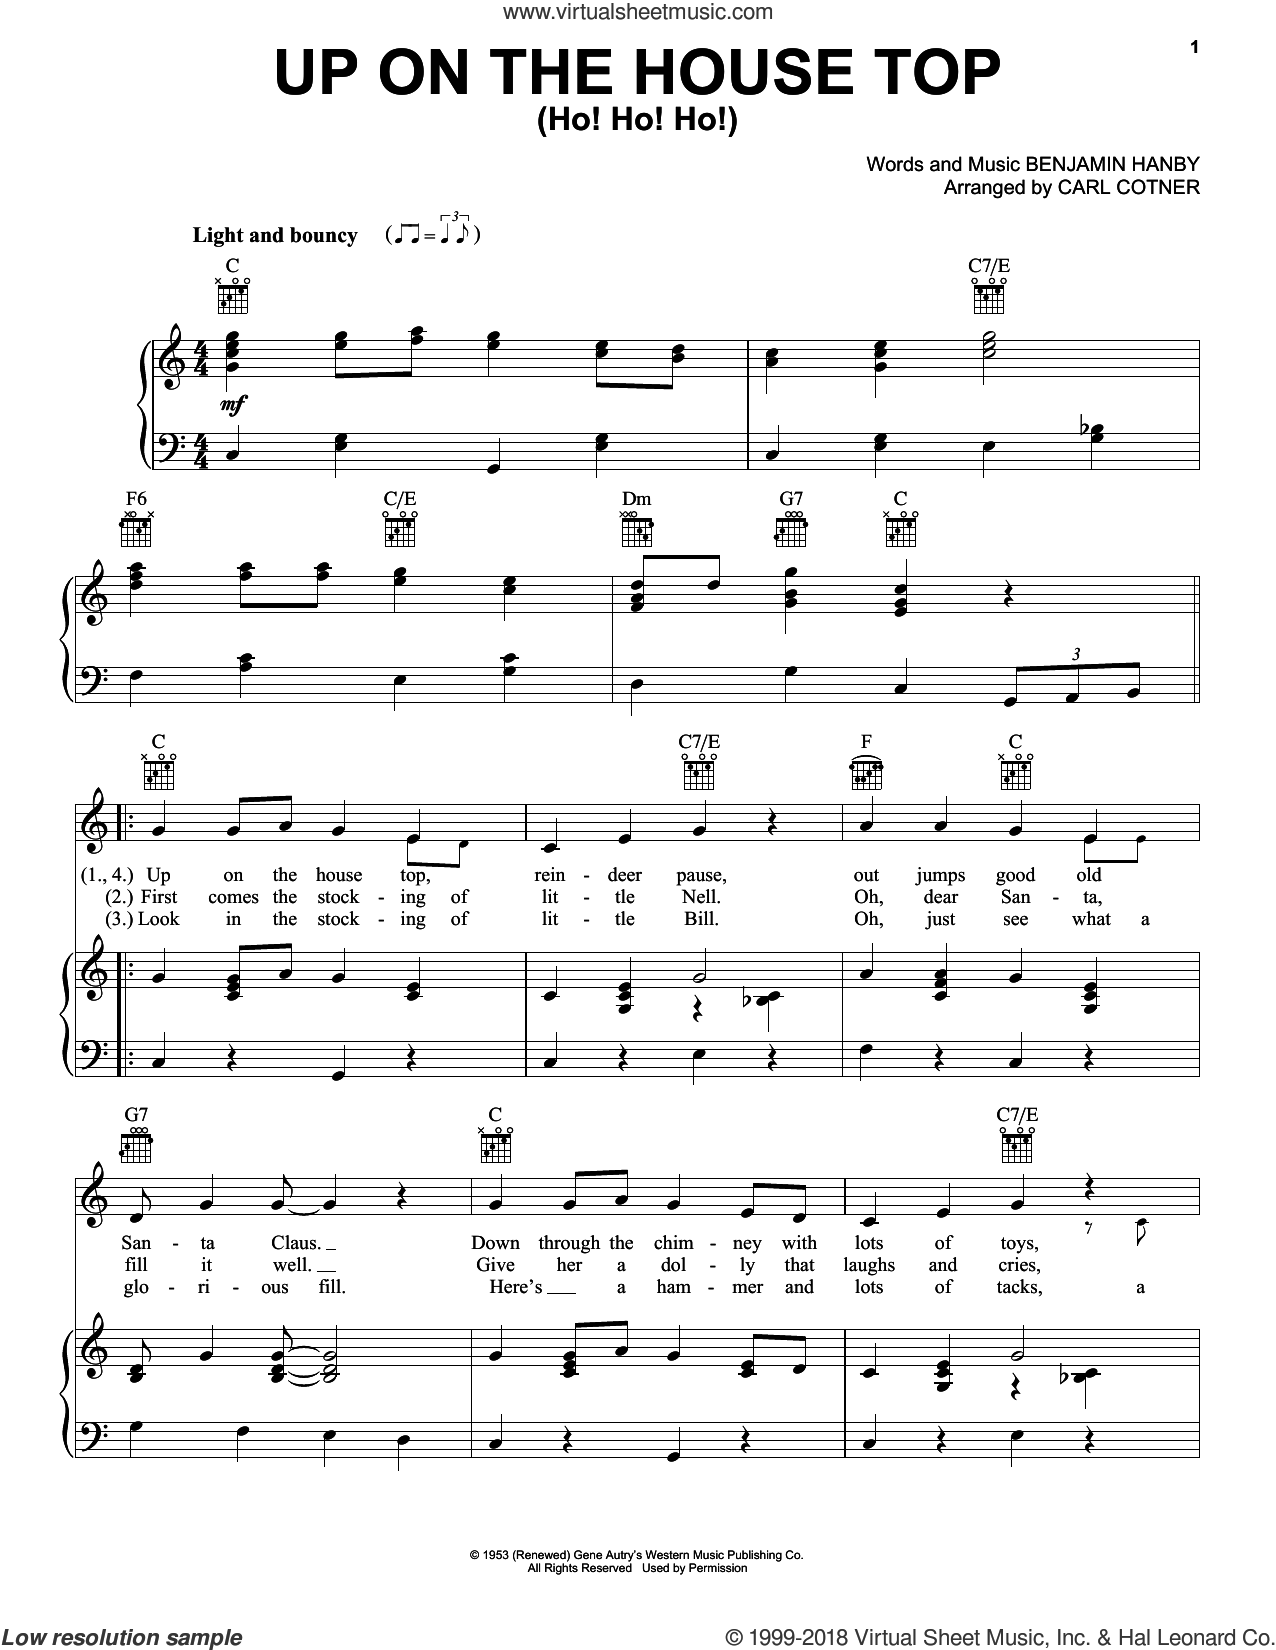 Up On The House Top (Ho! Ho! Ho!) sheet music for voice, piano or guitar by Gene Autry and Benjamin Hanby, intermediate skill level